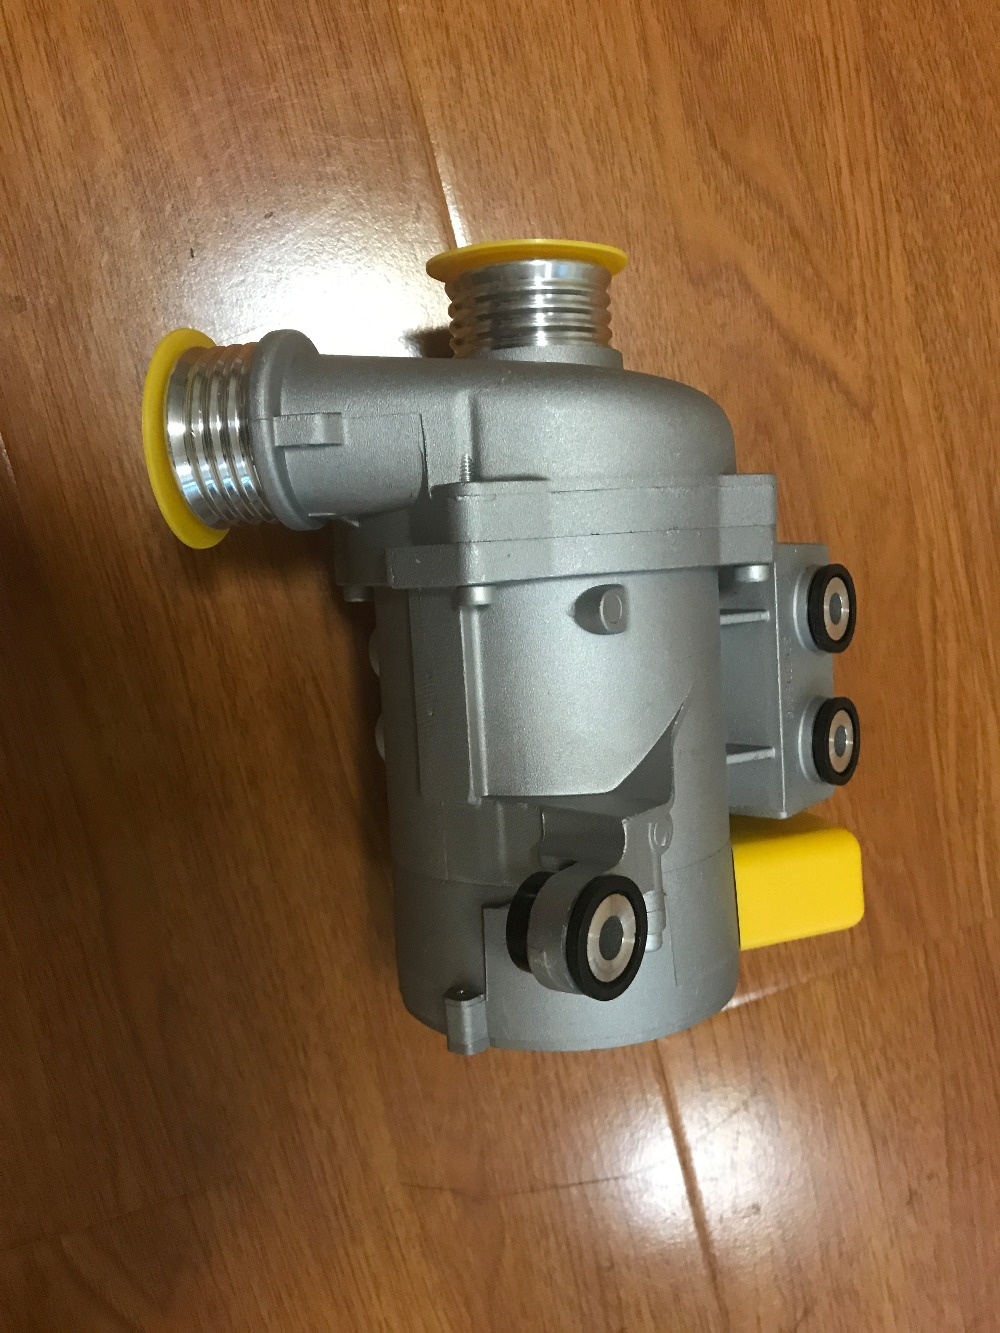 New Electric Engine Water Pump 11517586925 For BMW X3 X5 328i 528i engine genset water pump 751 41022 for alpha lpw lpws lpwt